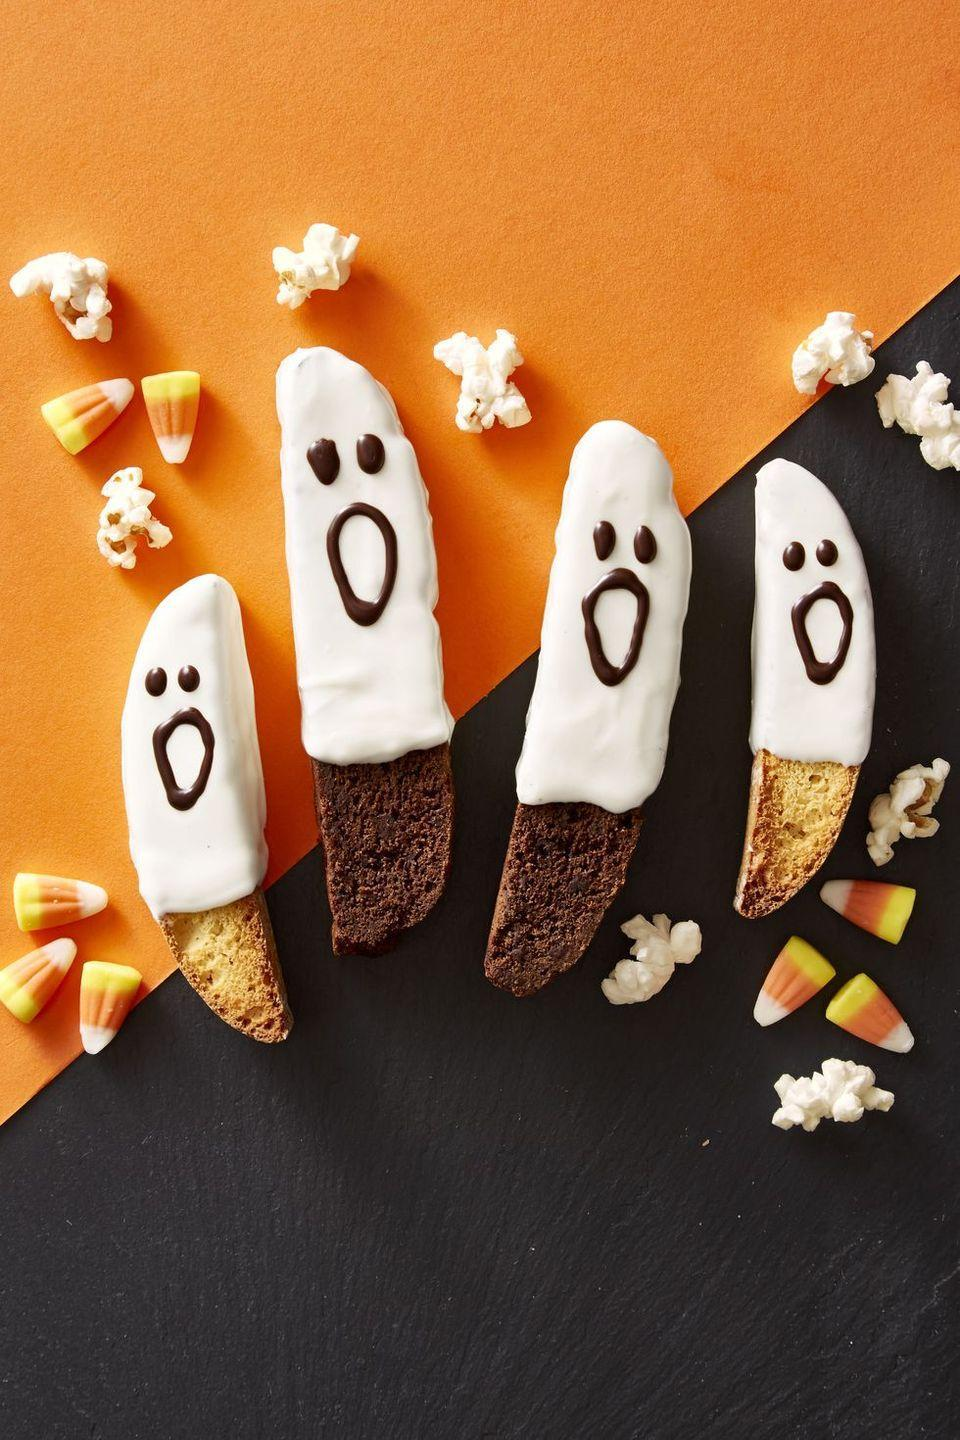 """<p>For the parents at the party, make these white and dark chocolate-dipped cookies for their coffee (they'll need it for the night of trick-or-treating ahead of them!).</p><p><em><strong>Get the recipe at <a href=""""https://www.goodhousekeeping.com/food-recipes/a46101/boo-scotti-recipe/"""" rel=""""nofollow noopener"""" target=""""_blank"""" data-ylk=""""slk:Good Housekeeping"""" class=""""link rapid-noclick-resp"""">Good Housekeeping</a>.</strong></em></p>"""